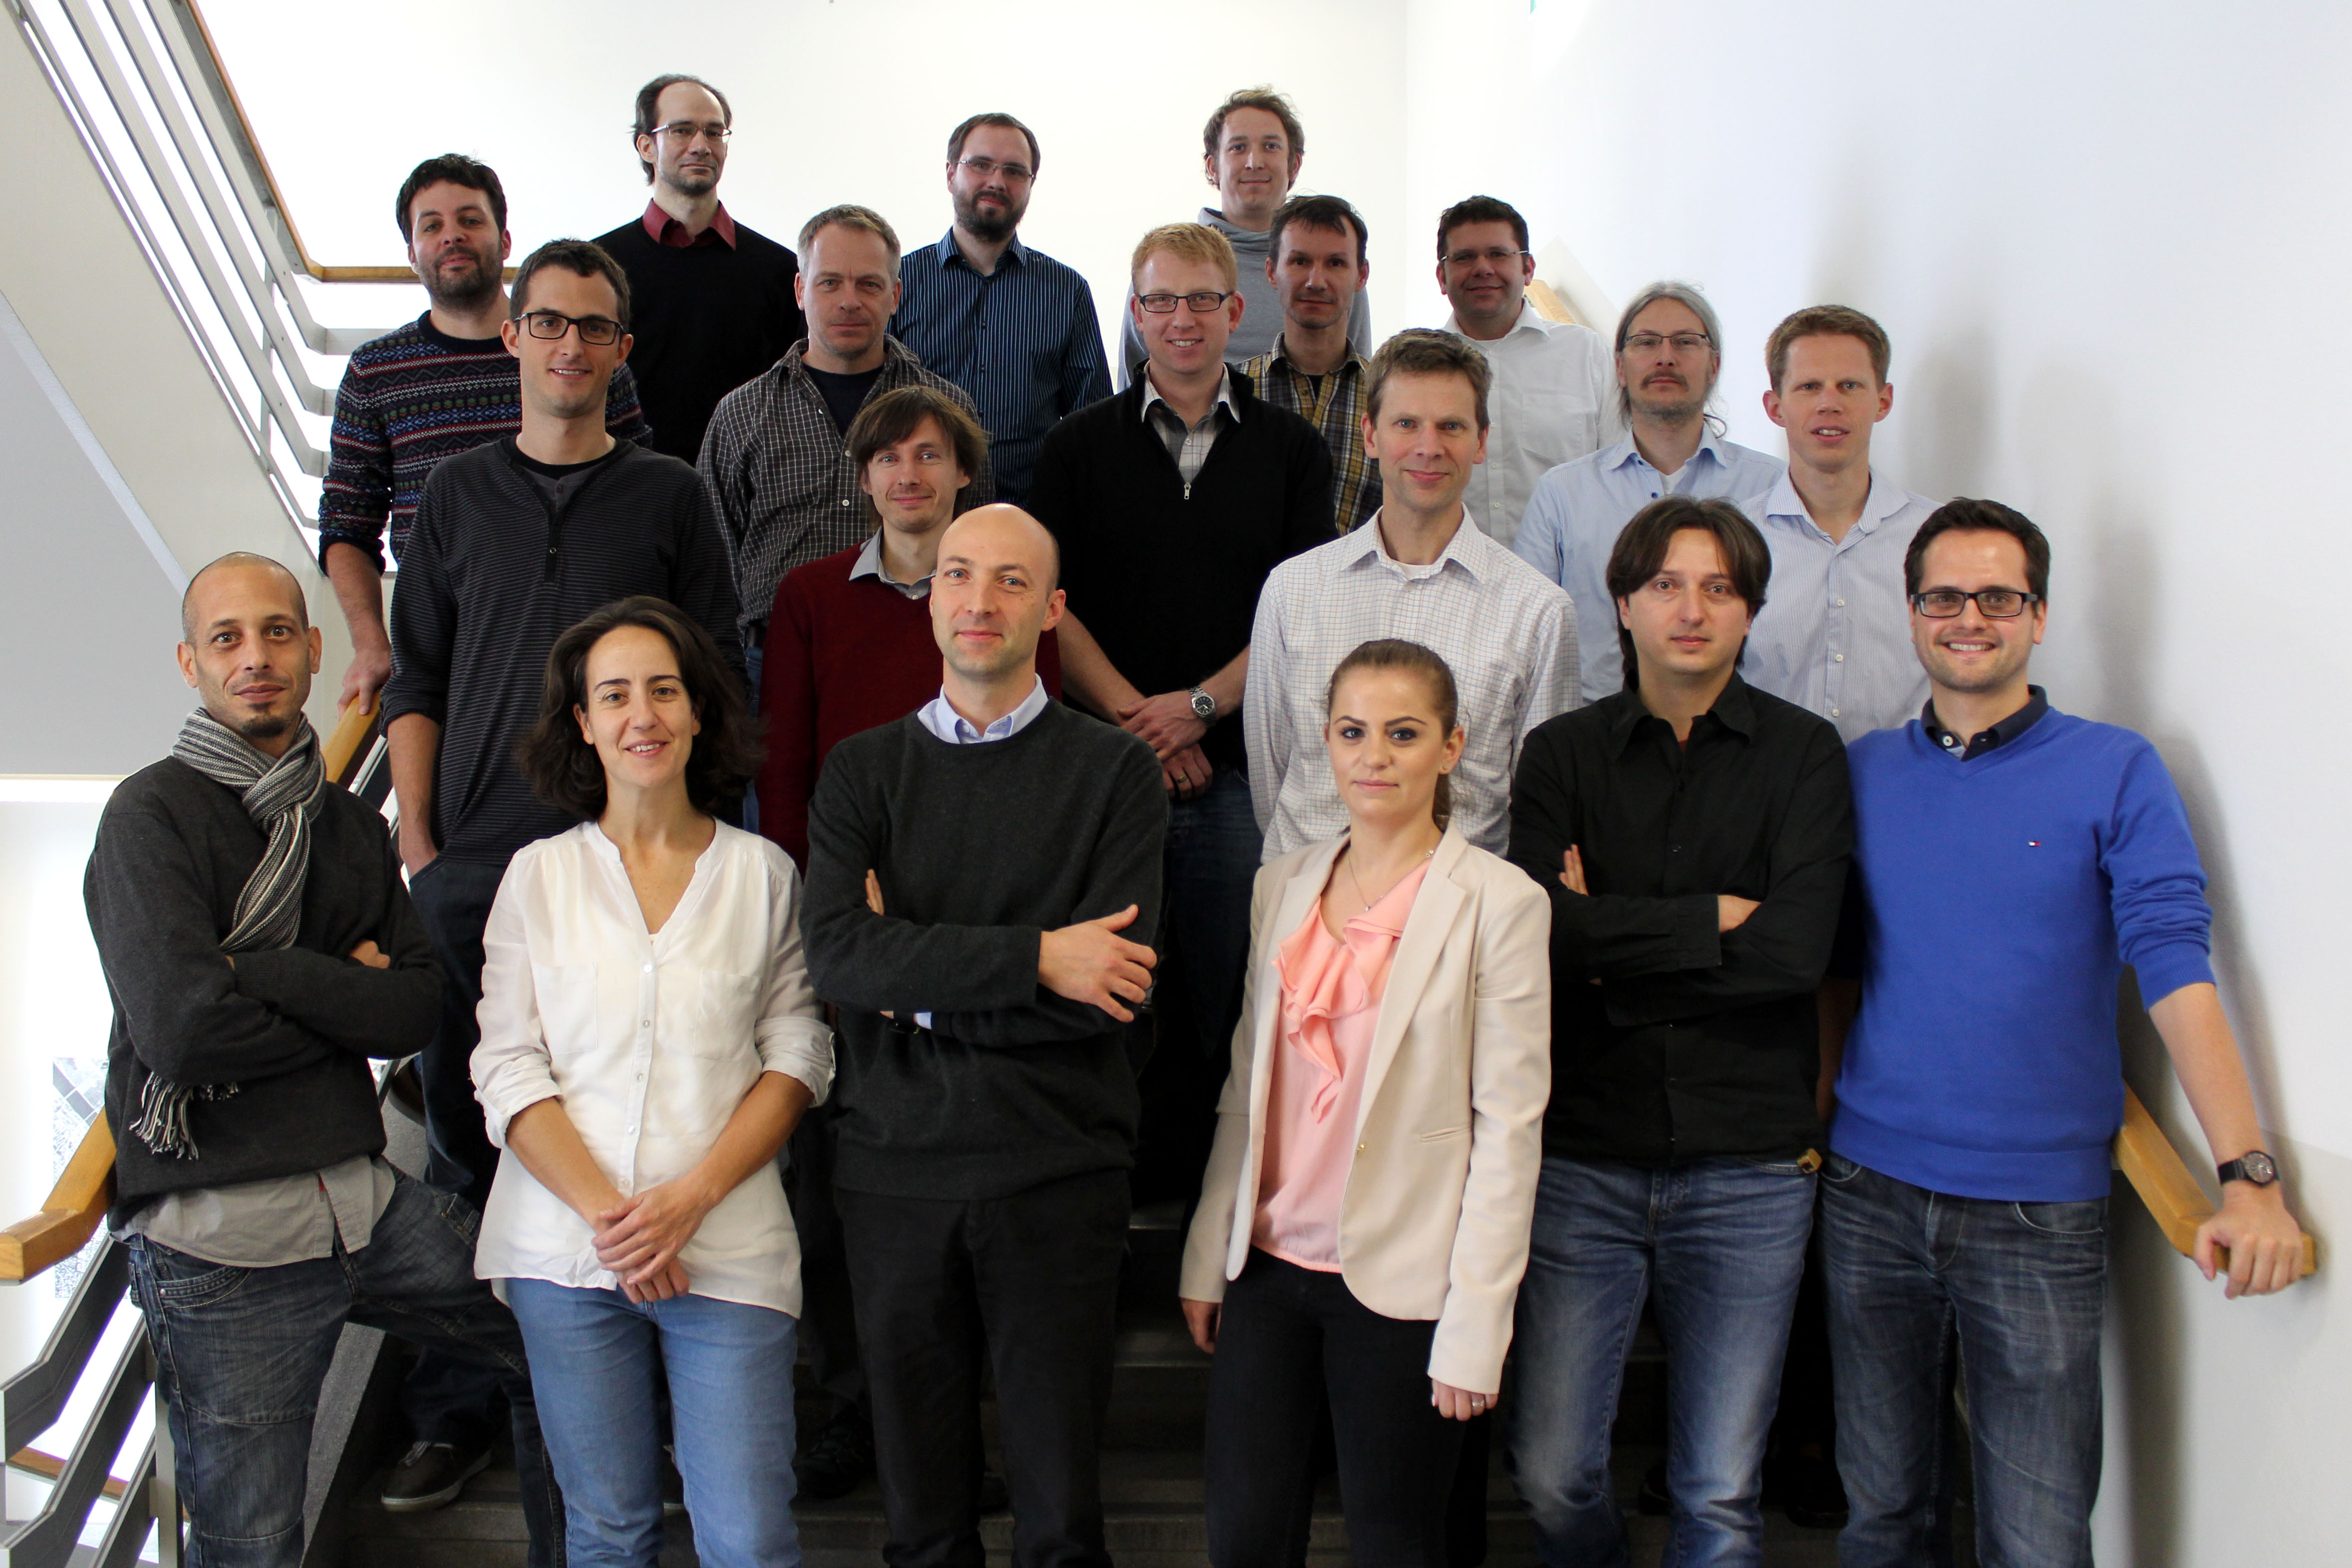 ALS workshop group photo